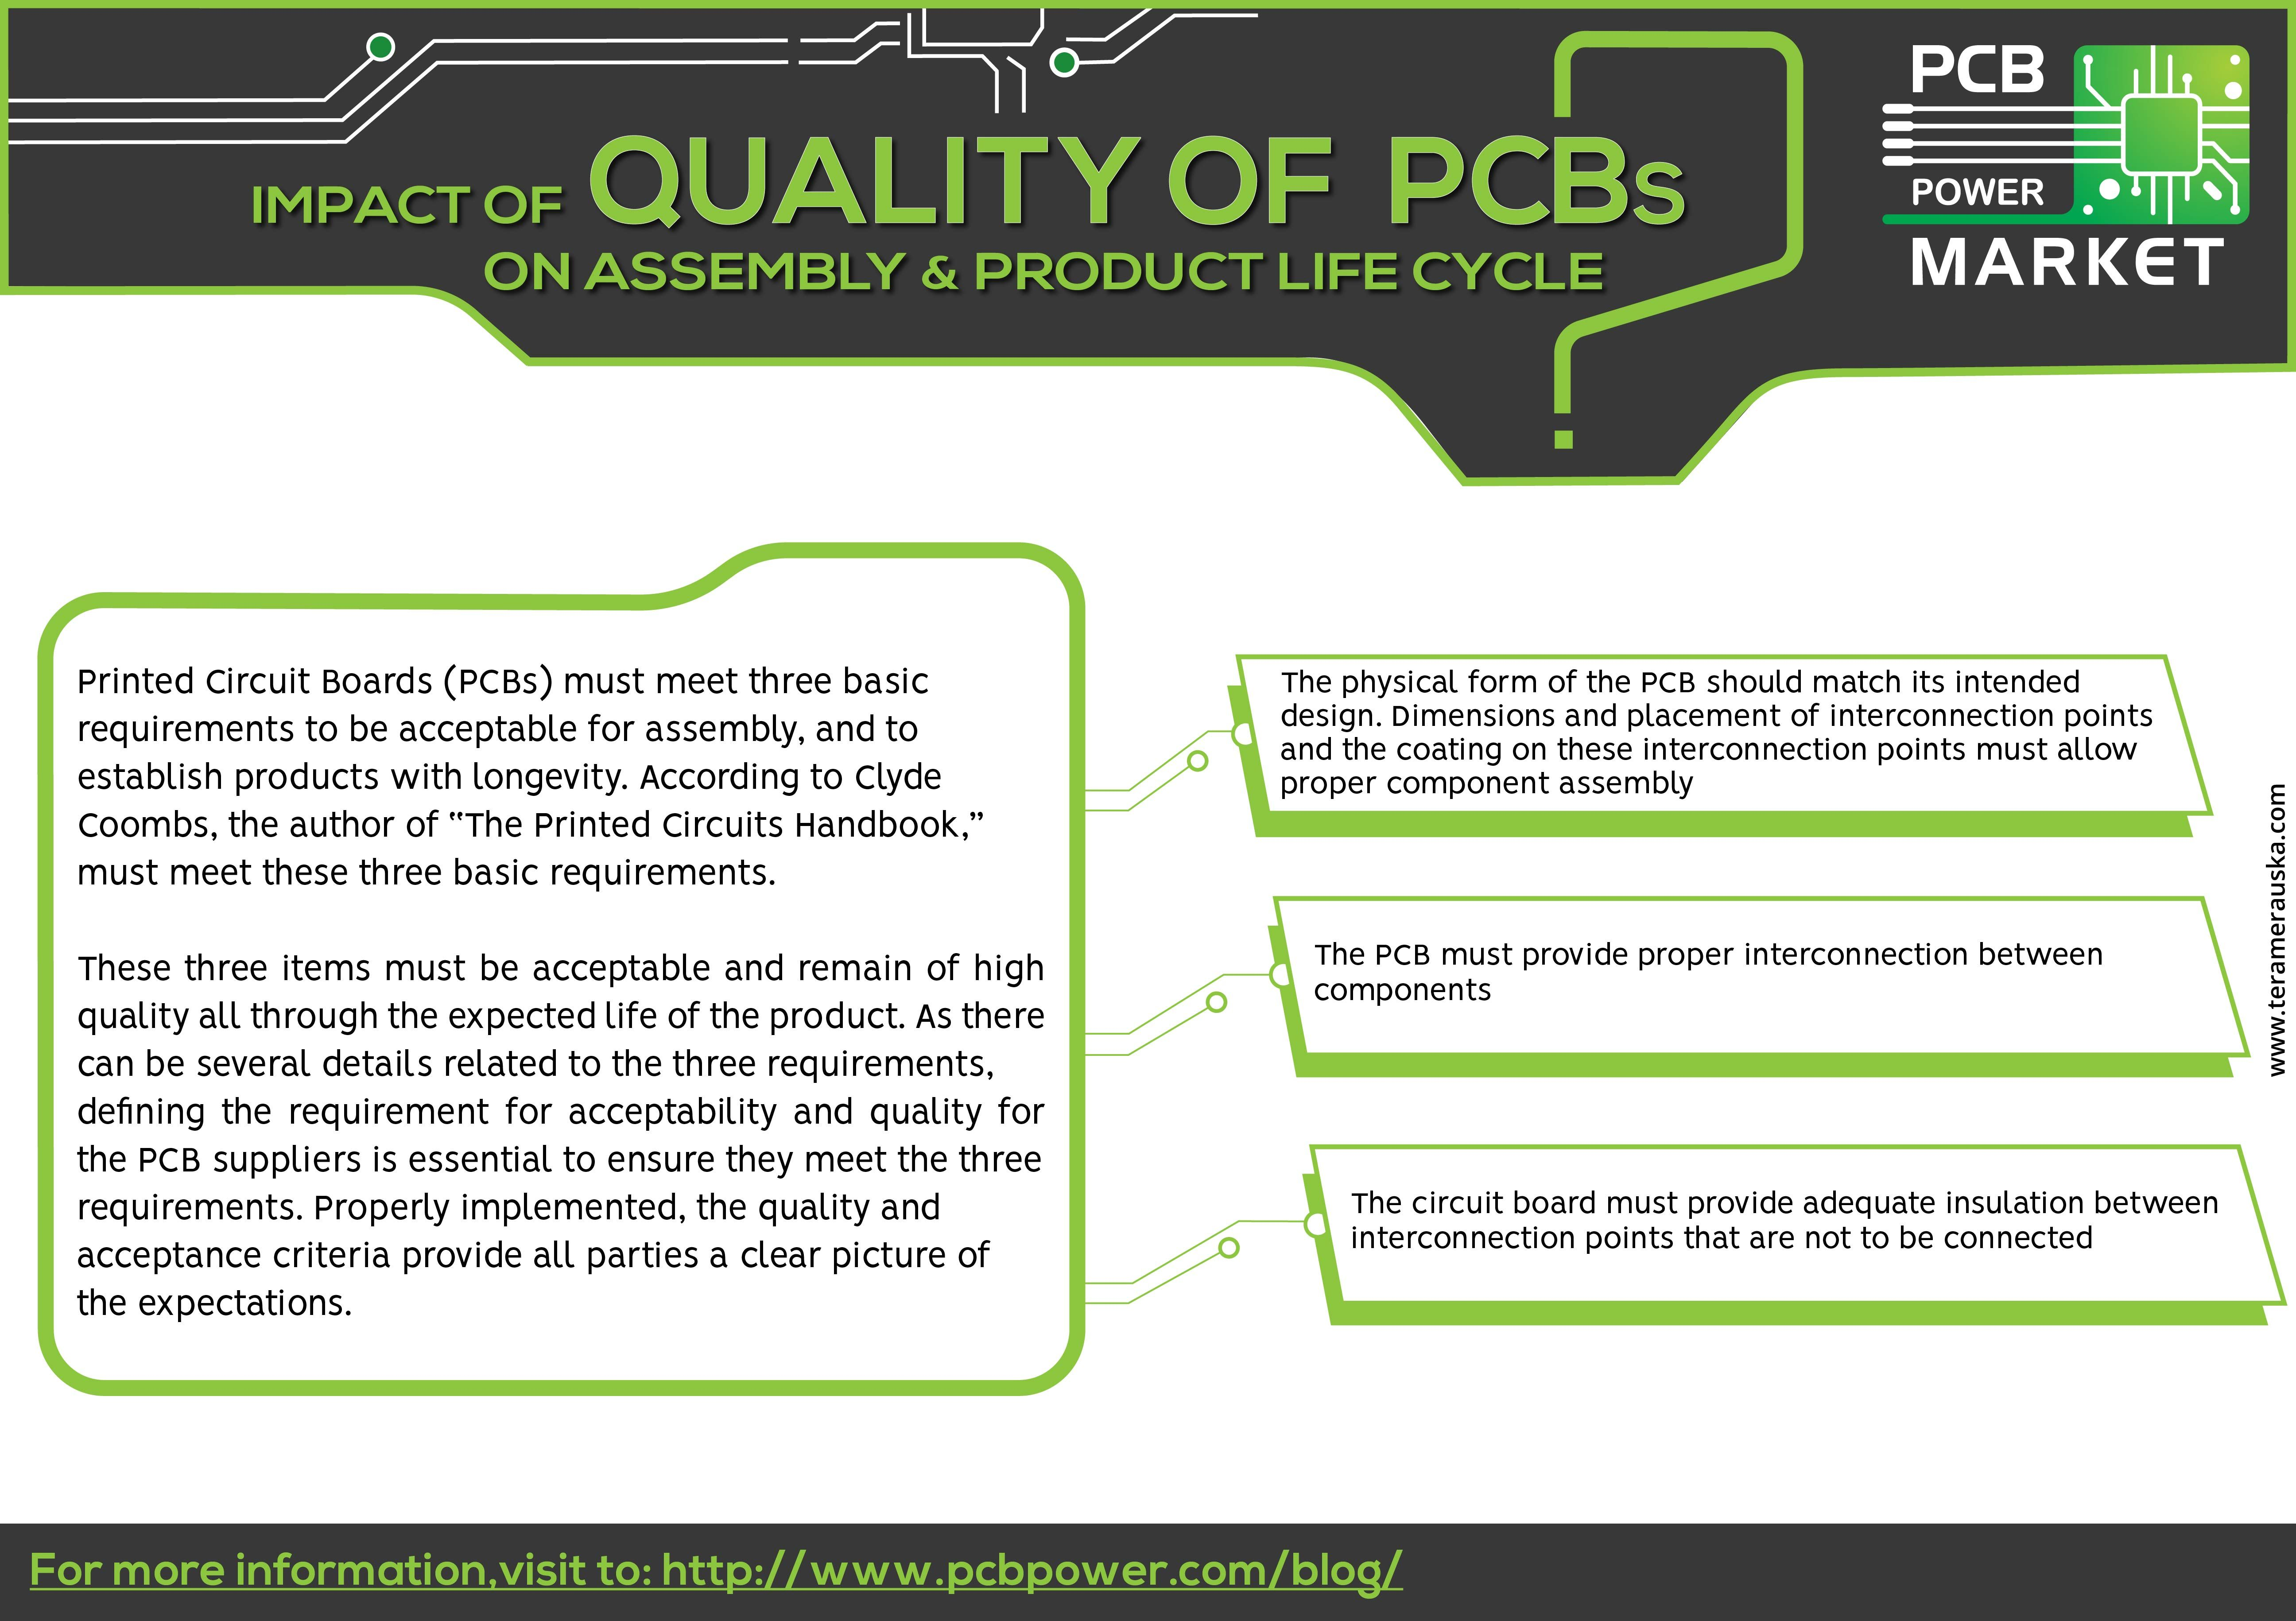 Impact Of Quality Pcbs On Assembly And Product Life Cycle Printed Circuit Board Series Multi Boards Must Meet Three Basic Requirements To Be Acceptable For